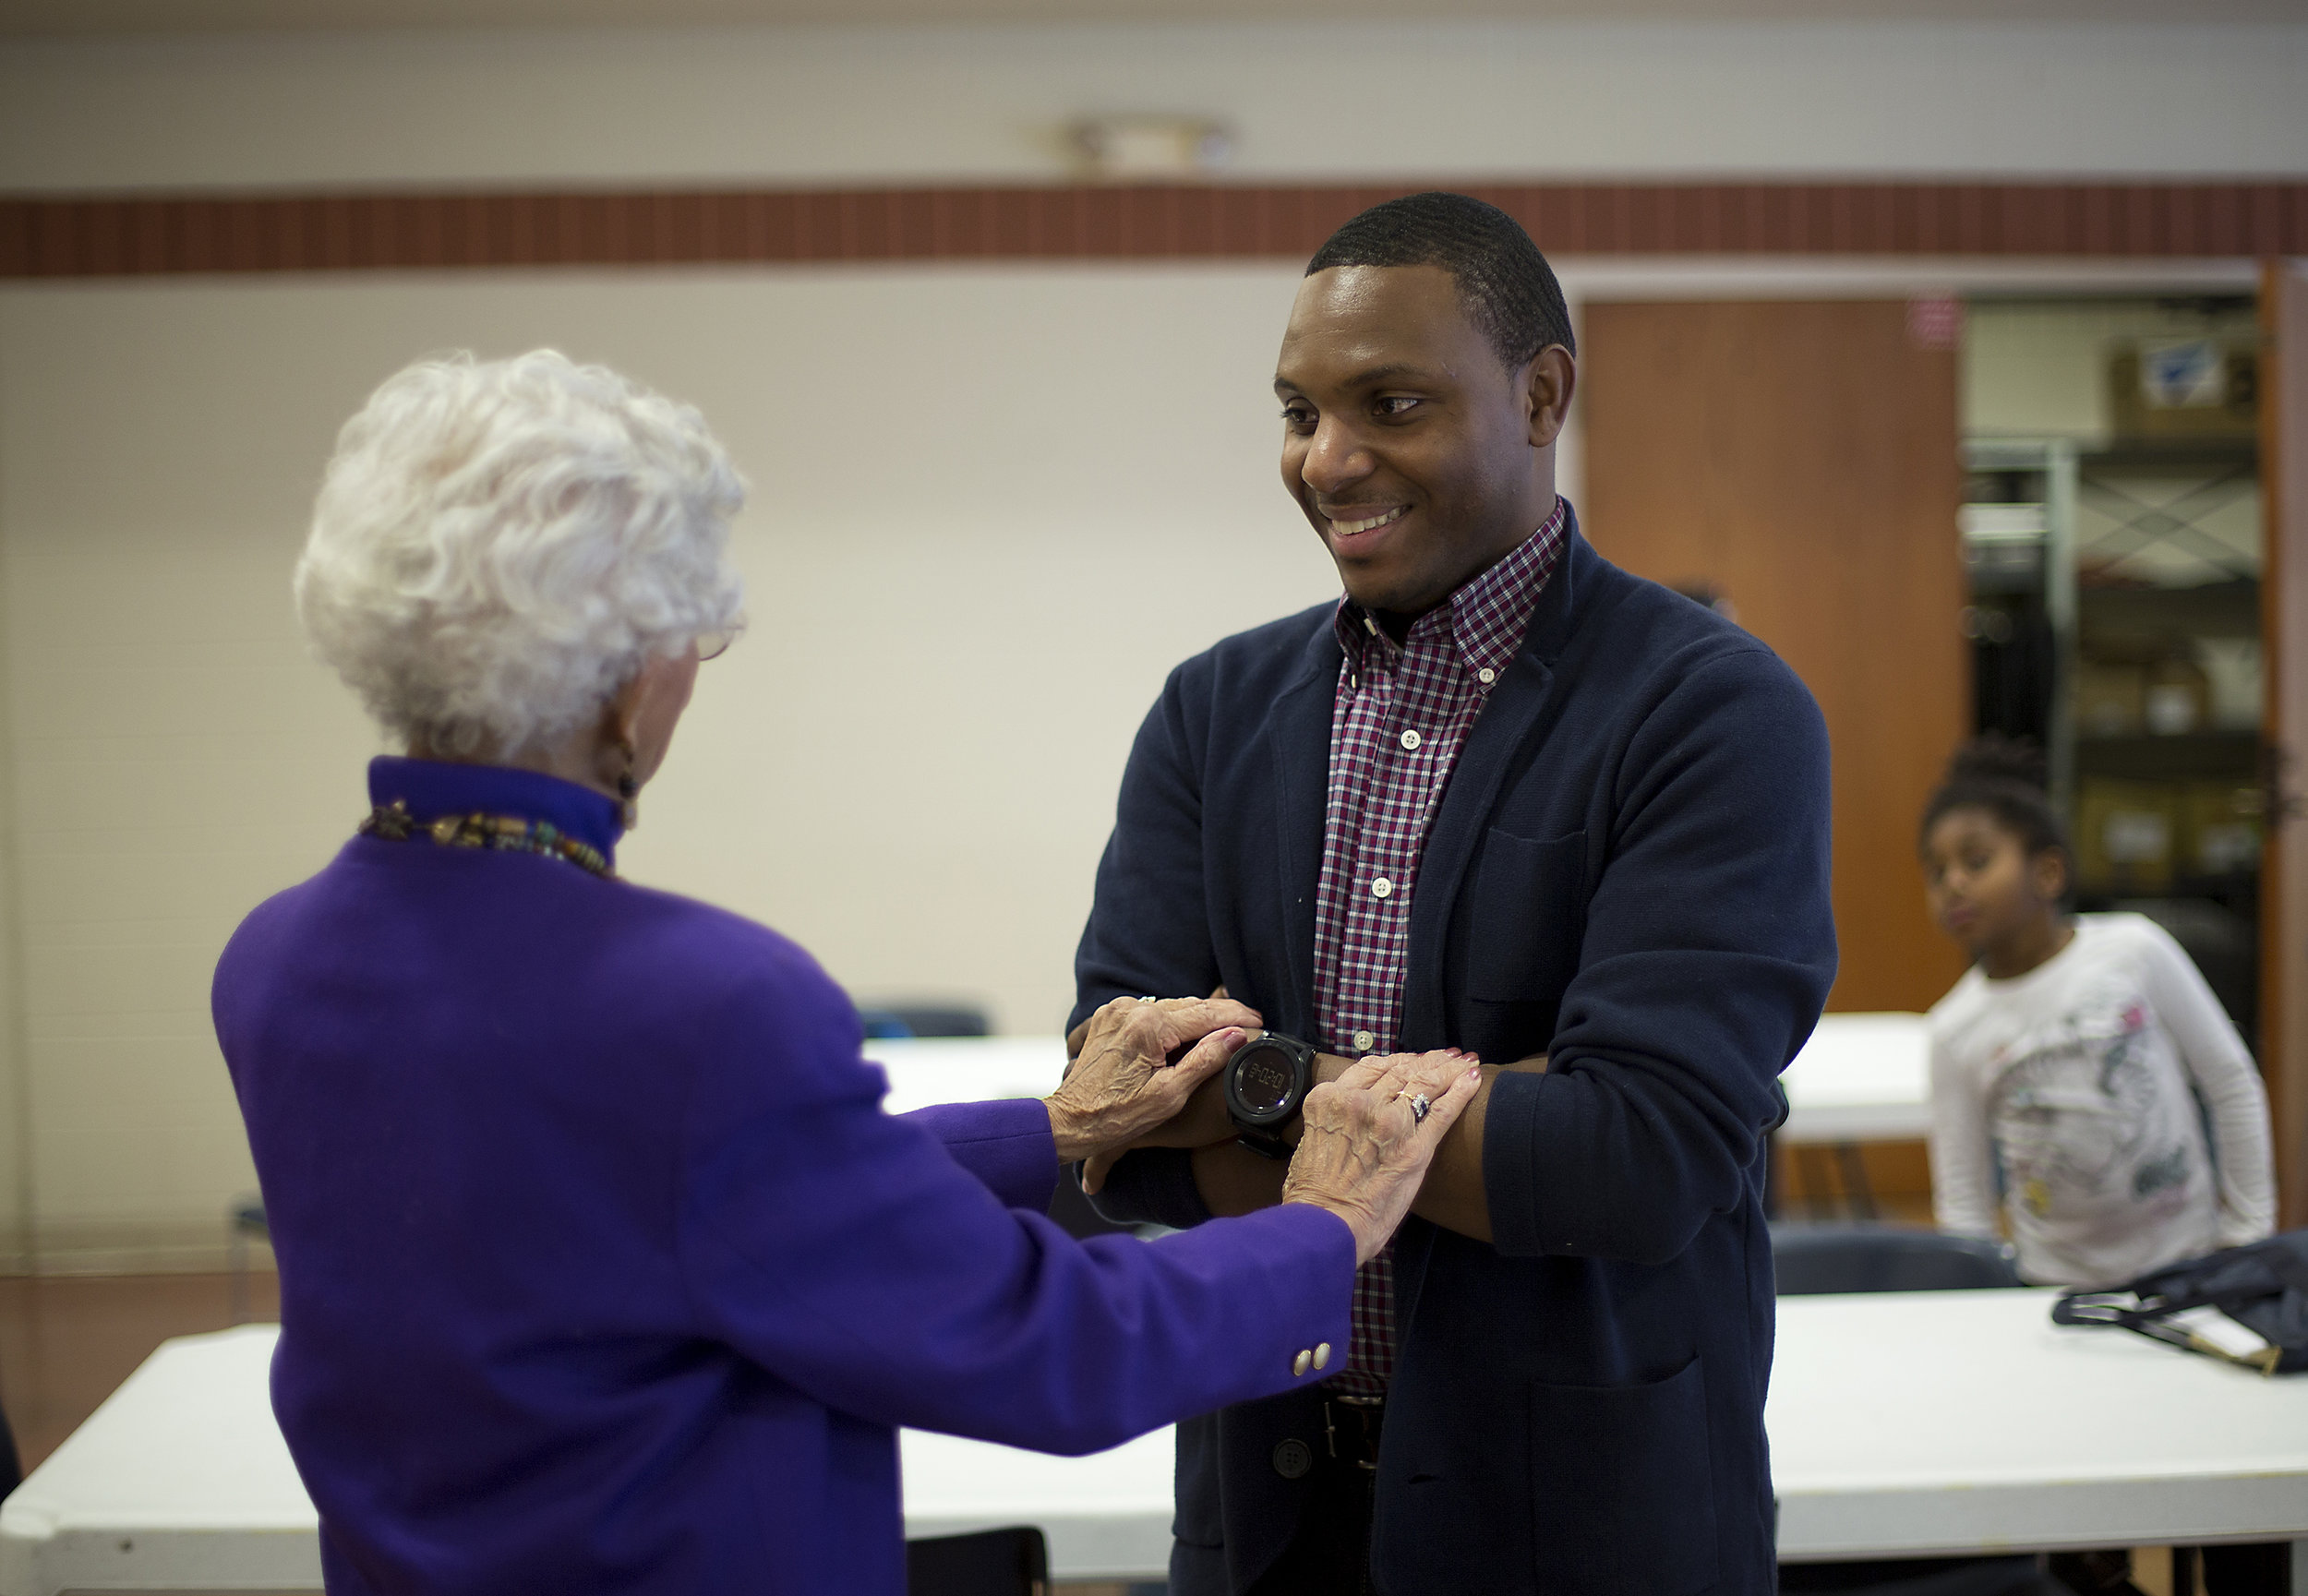 Elizer Darris greets Dr. Josie Johnson before graduating from the African American Leadership Forum's fellowship program in December. The graduation was part of a transformative year for Darris, a motivational speaker, who was recently released from prison.